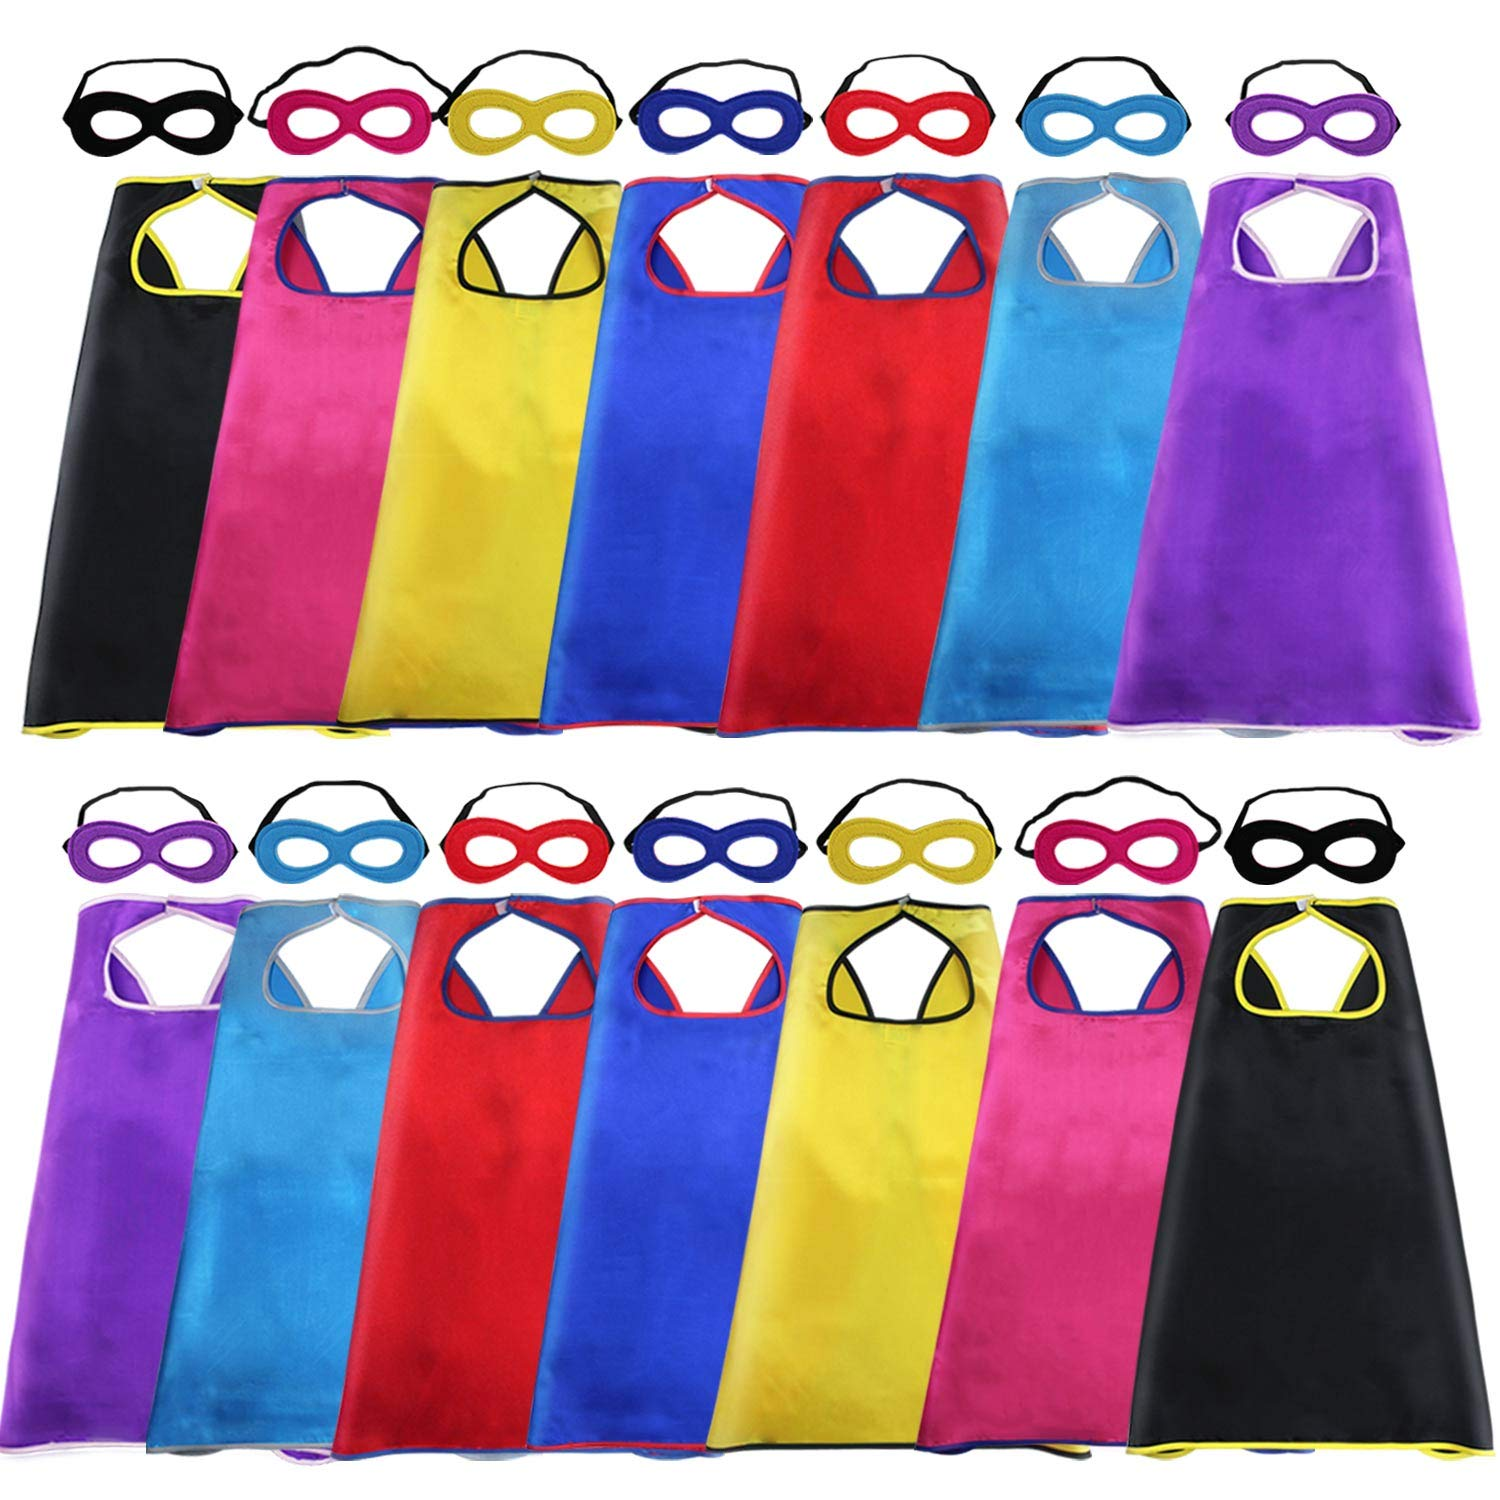 Super Hero Capes and Masks for Kids Bulk-Superhero Birthday Party Favor,14 Pack